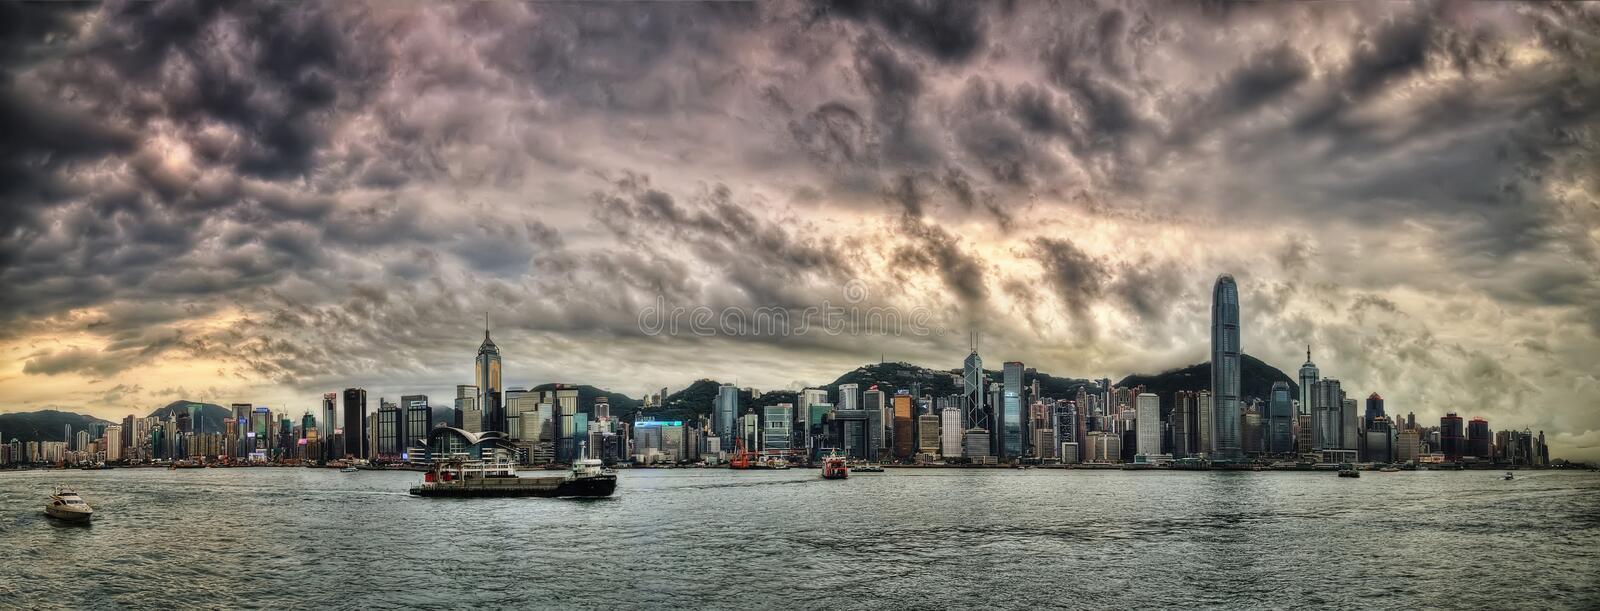 Por do sol de Hong Kong Skyline foto de stock royalty free